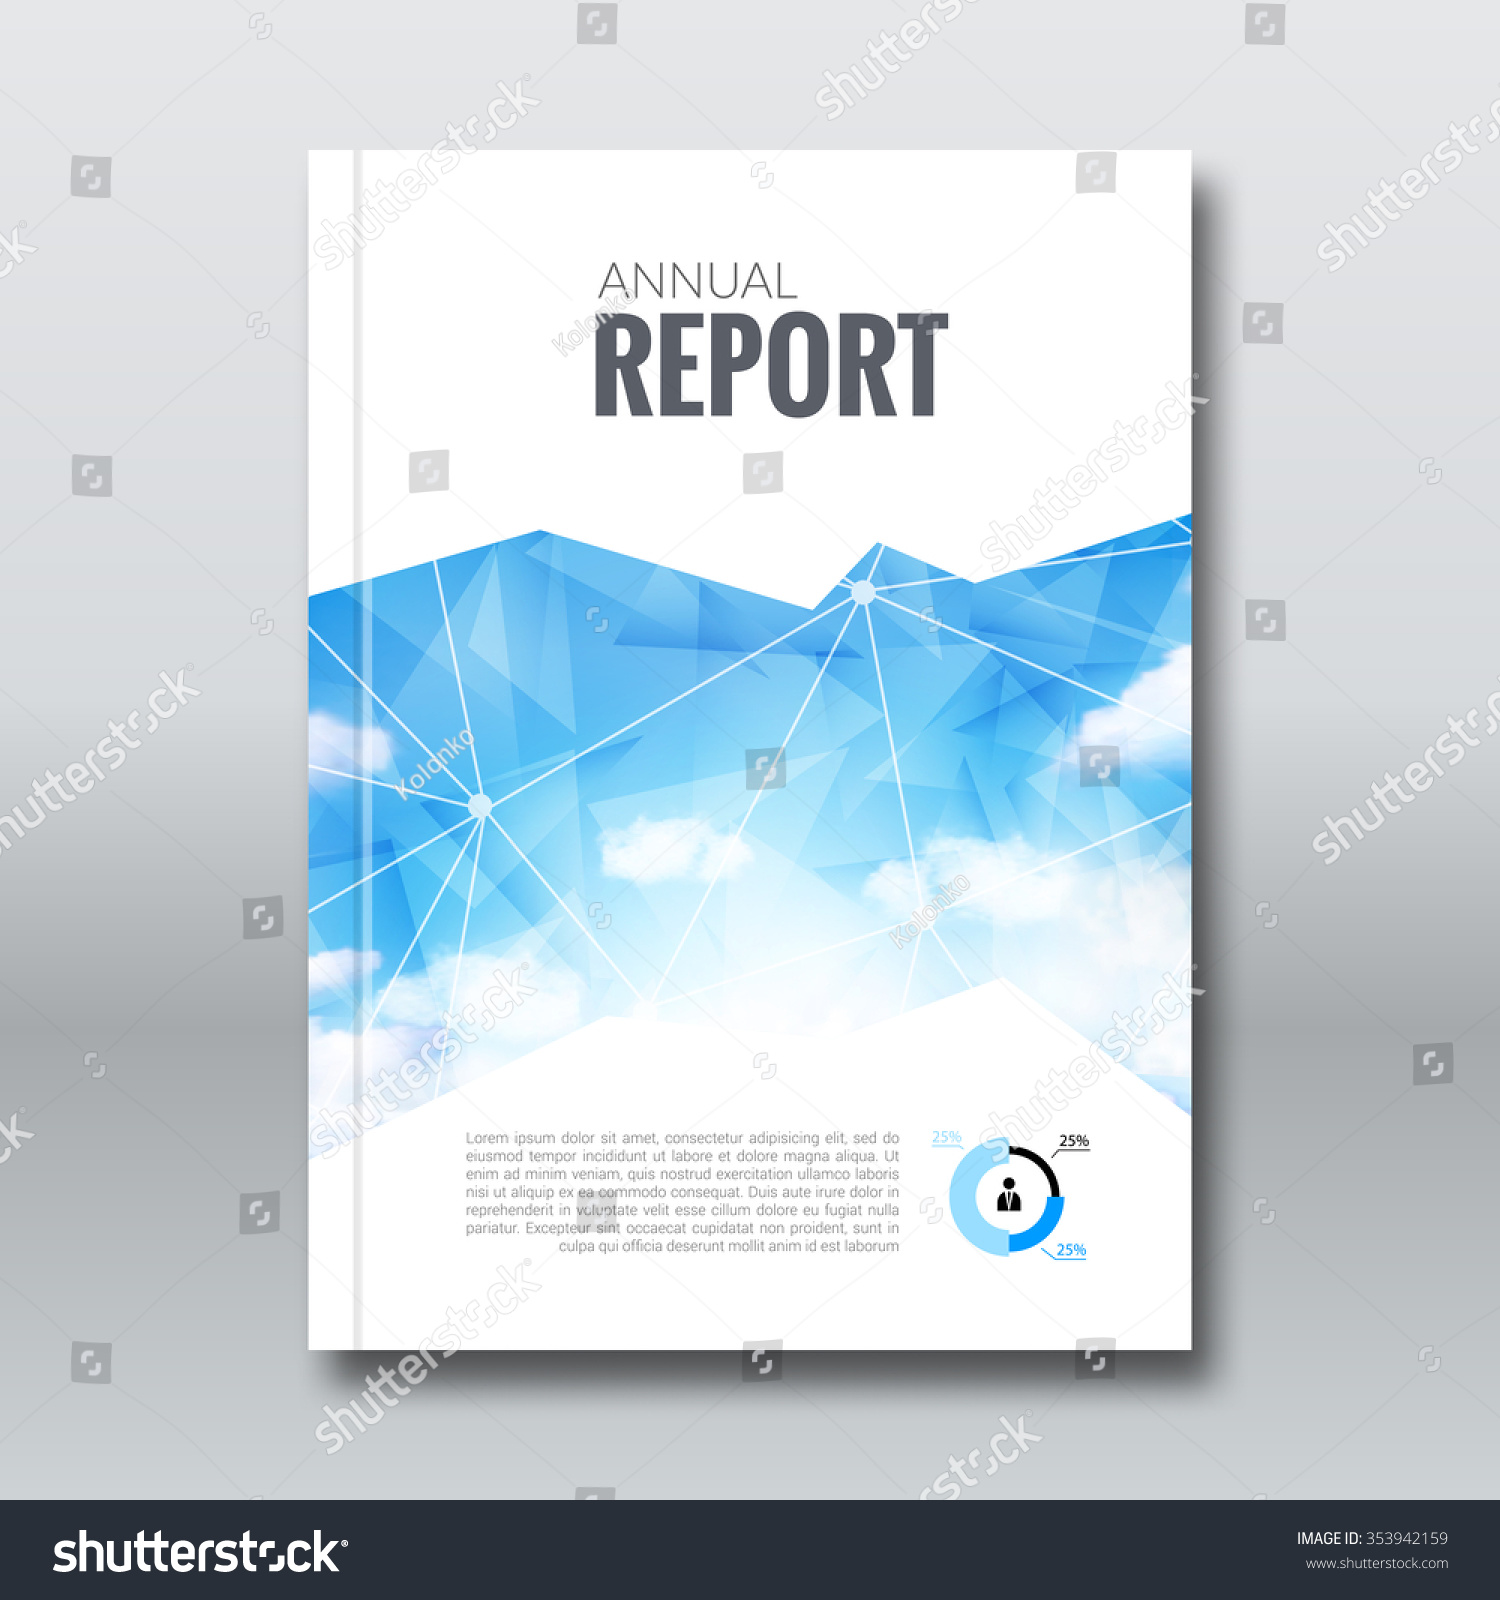 cover report business colorful triangle polygonal stock vector cover report business colorful triangle polygonal sky clouds geometric pattern design background cover magazine